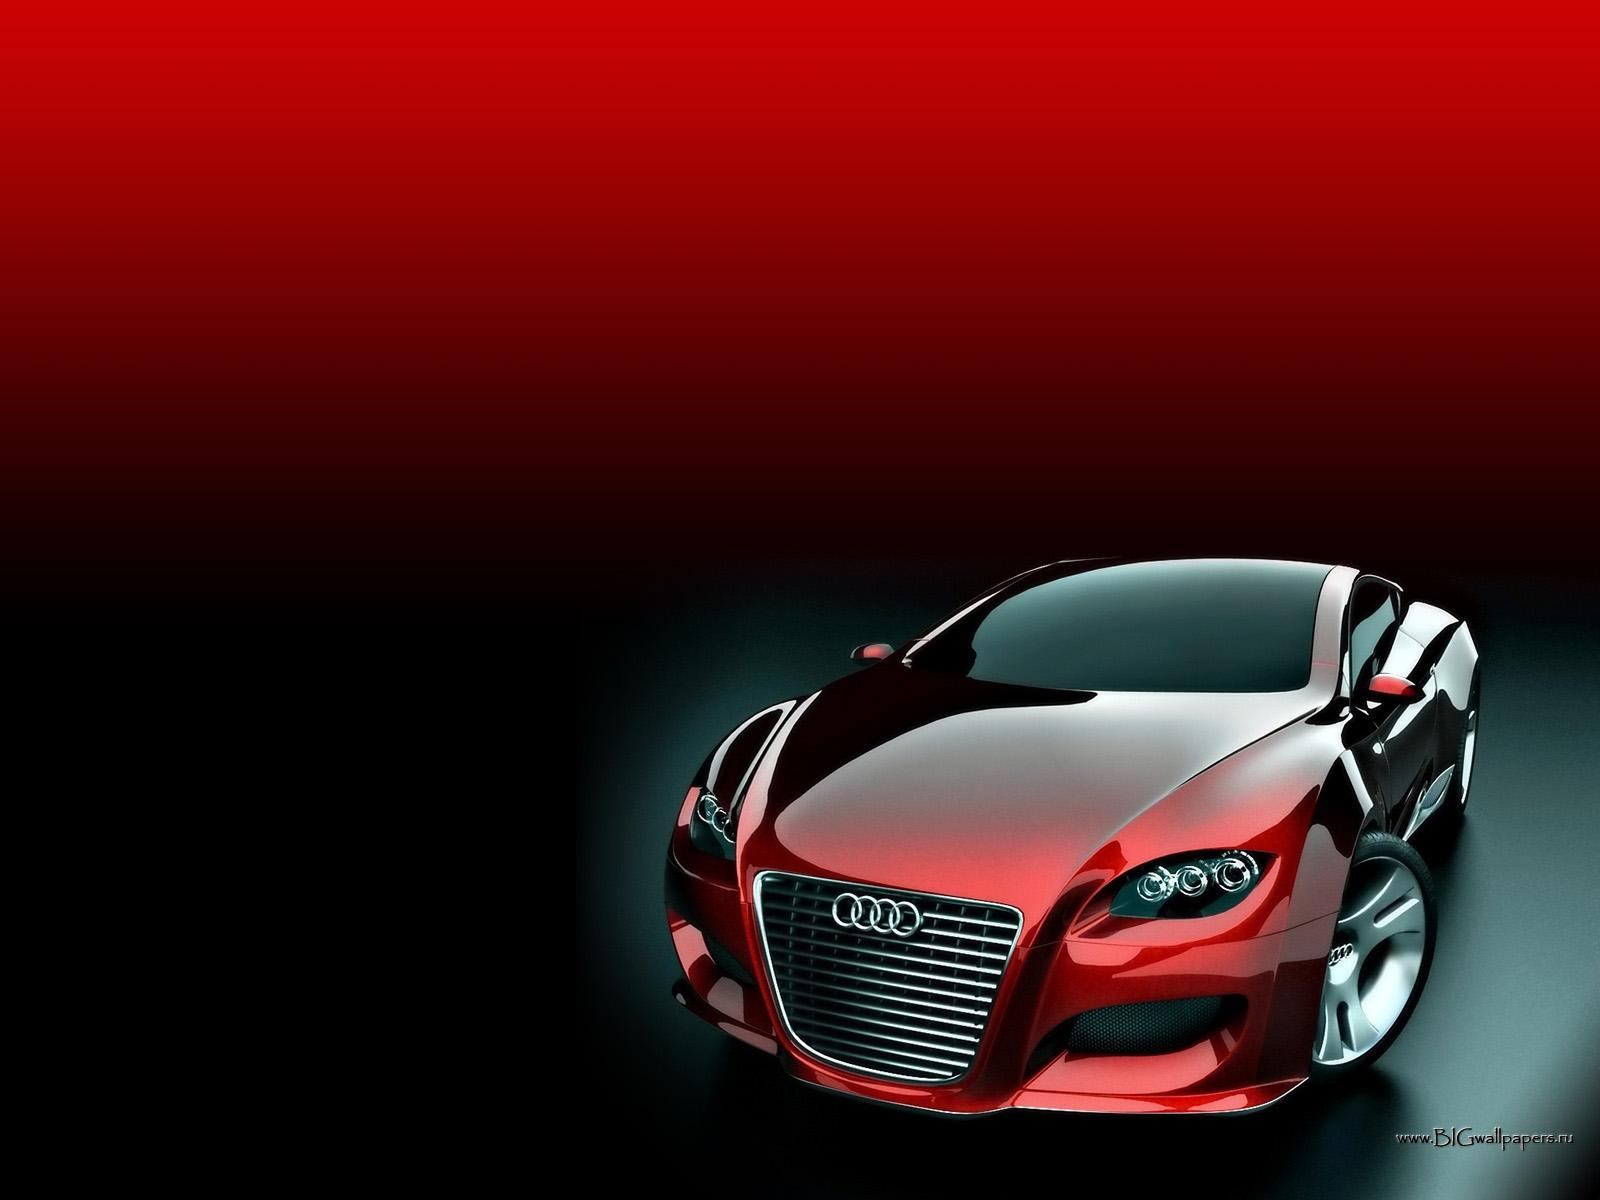 Background Images Cars SF Wallpaper